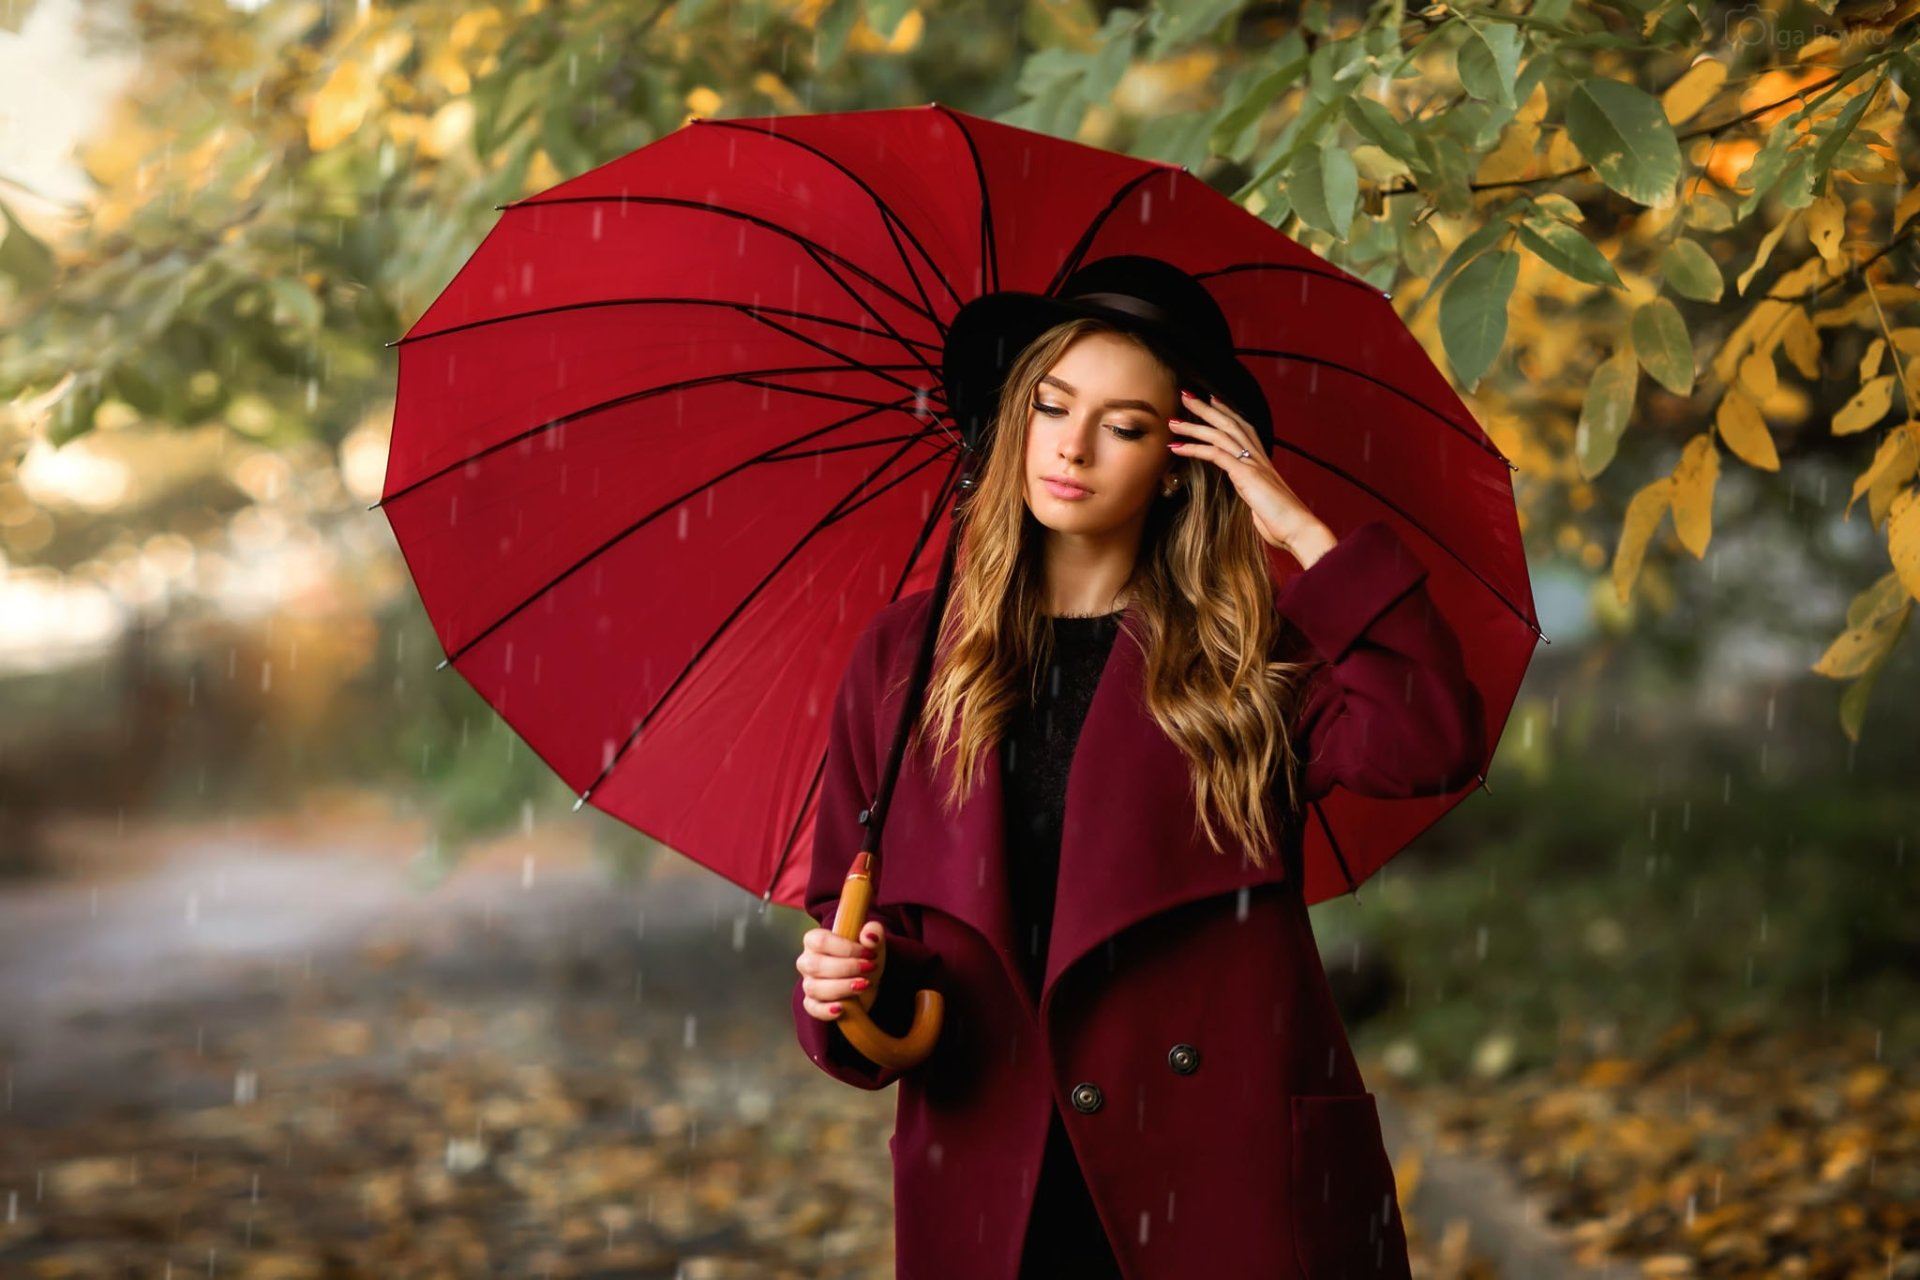 Women - Model  Umbrella Hat Rain Woman Girl Brunette Coat Depth Of Field Wallpaper